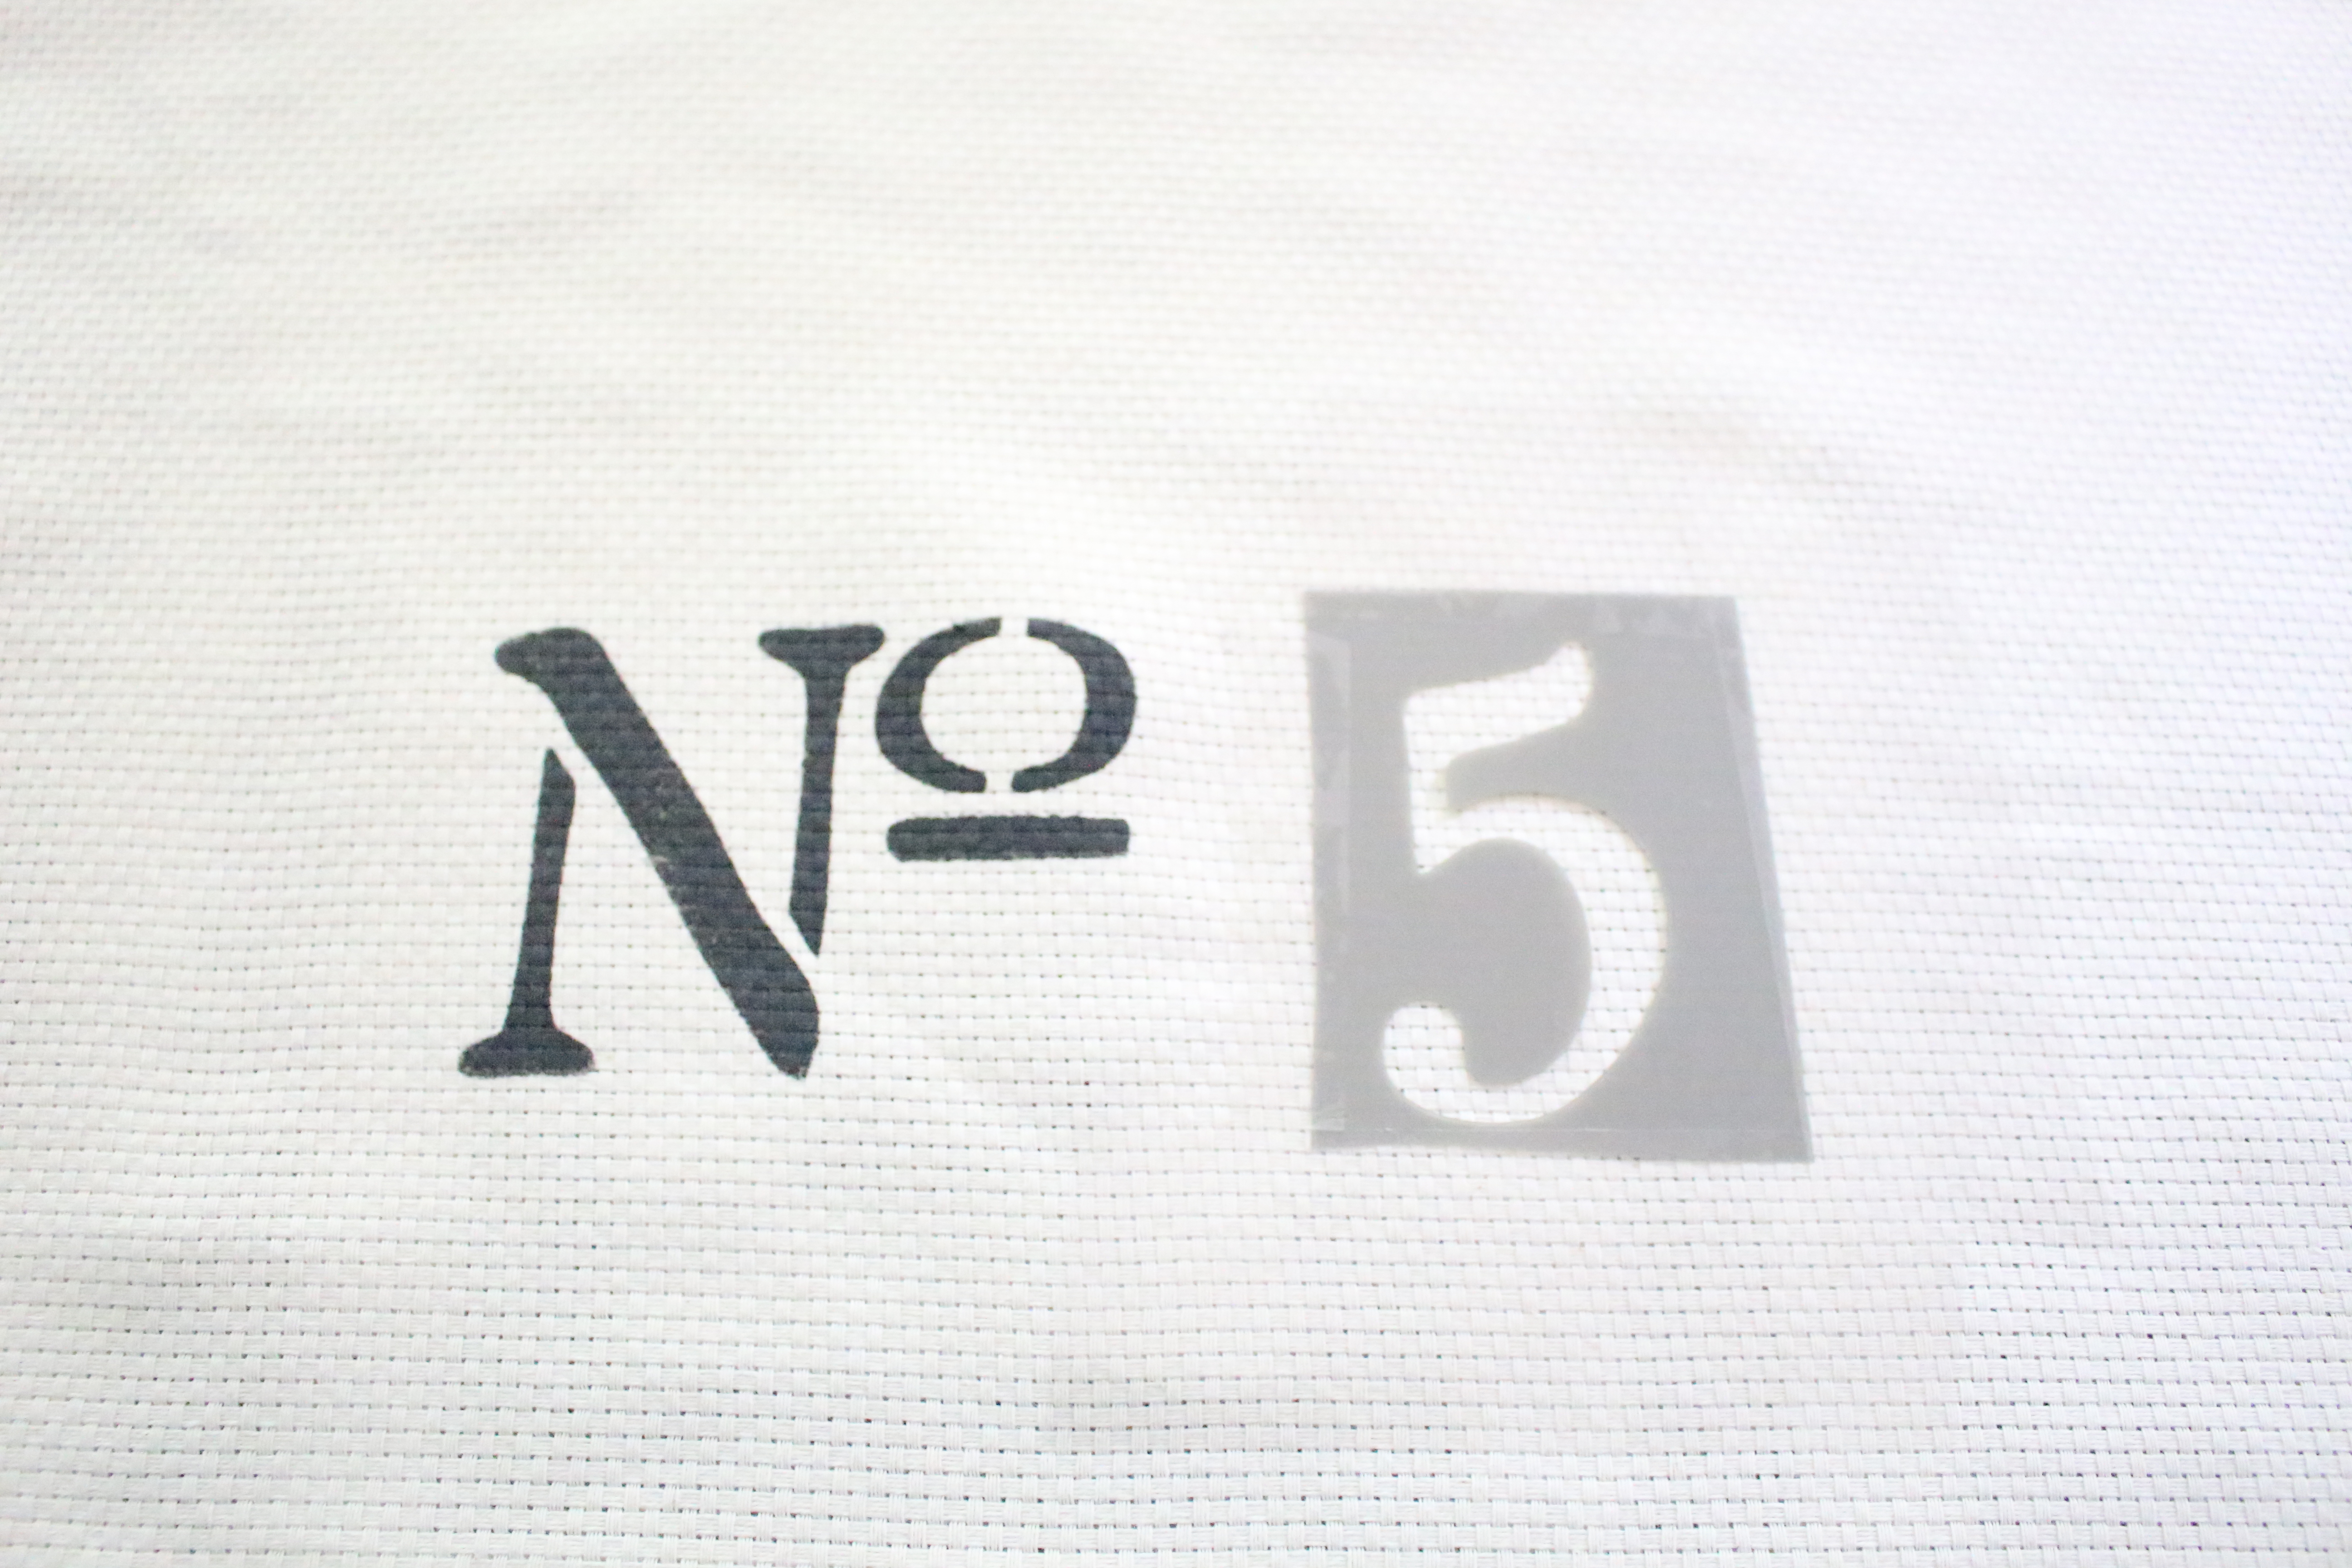 No. 5 Stencil on a Farmhouse Pillow Cover Project by www.whitecottagehomeandliving.com